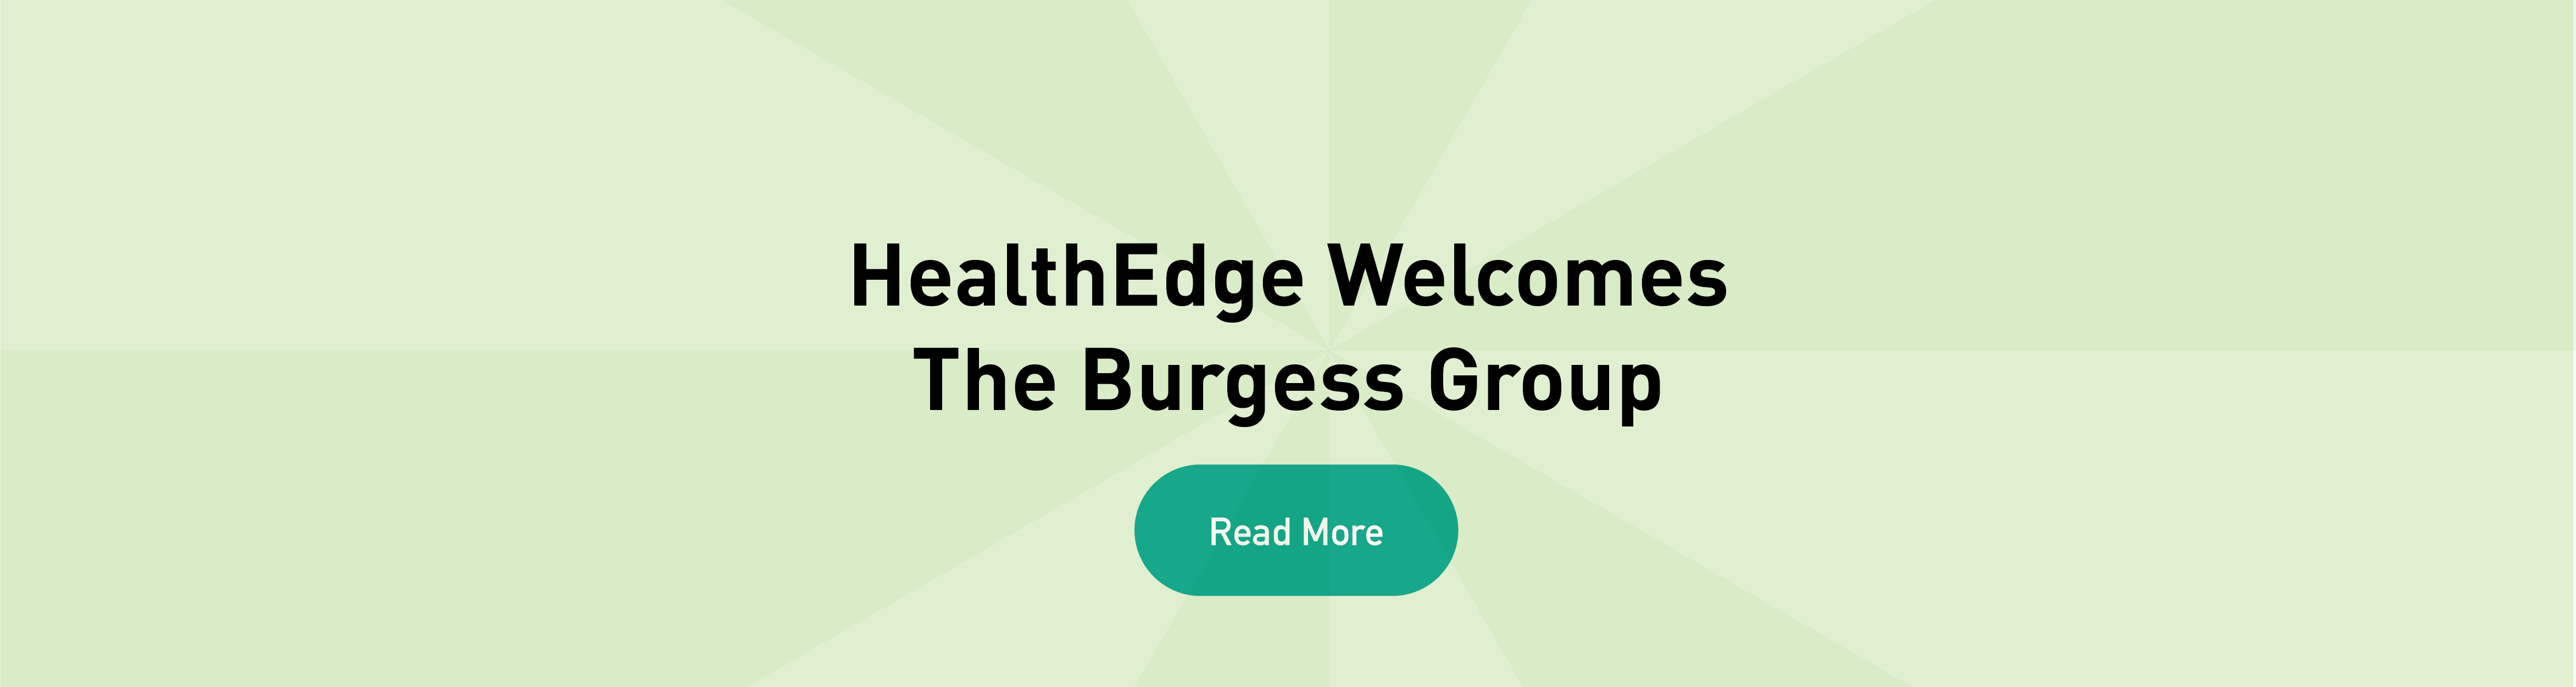 HealthEdge Acquired The Burgess Group